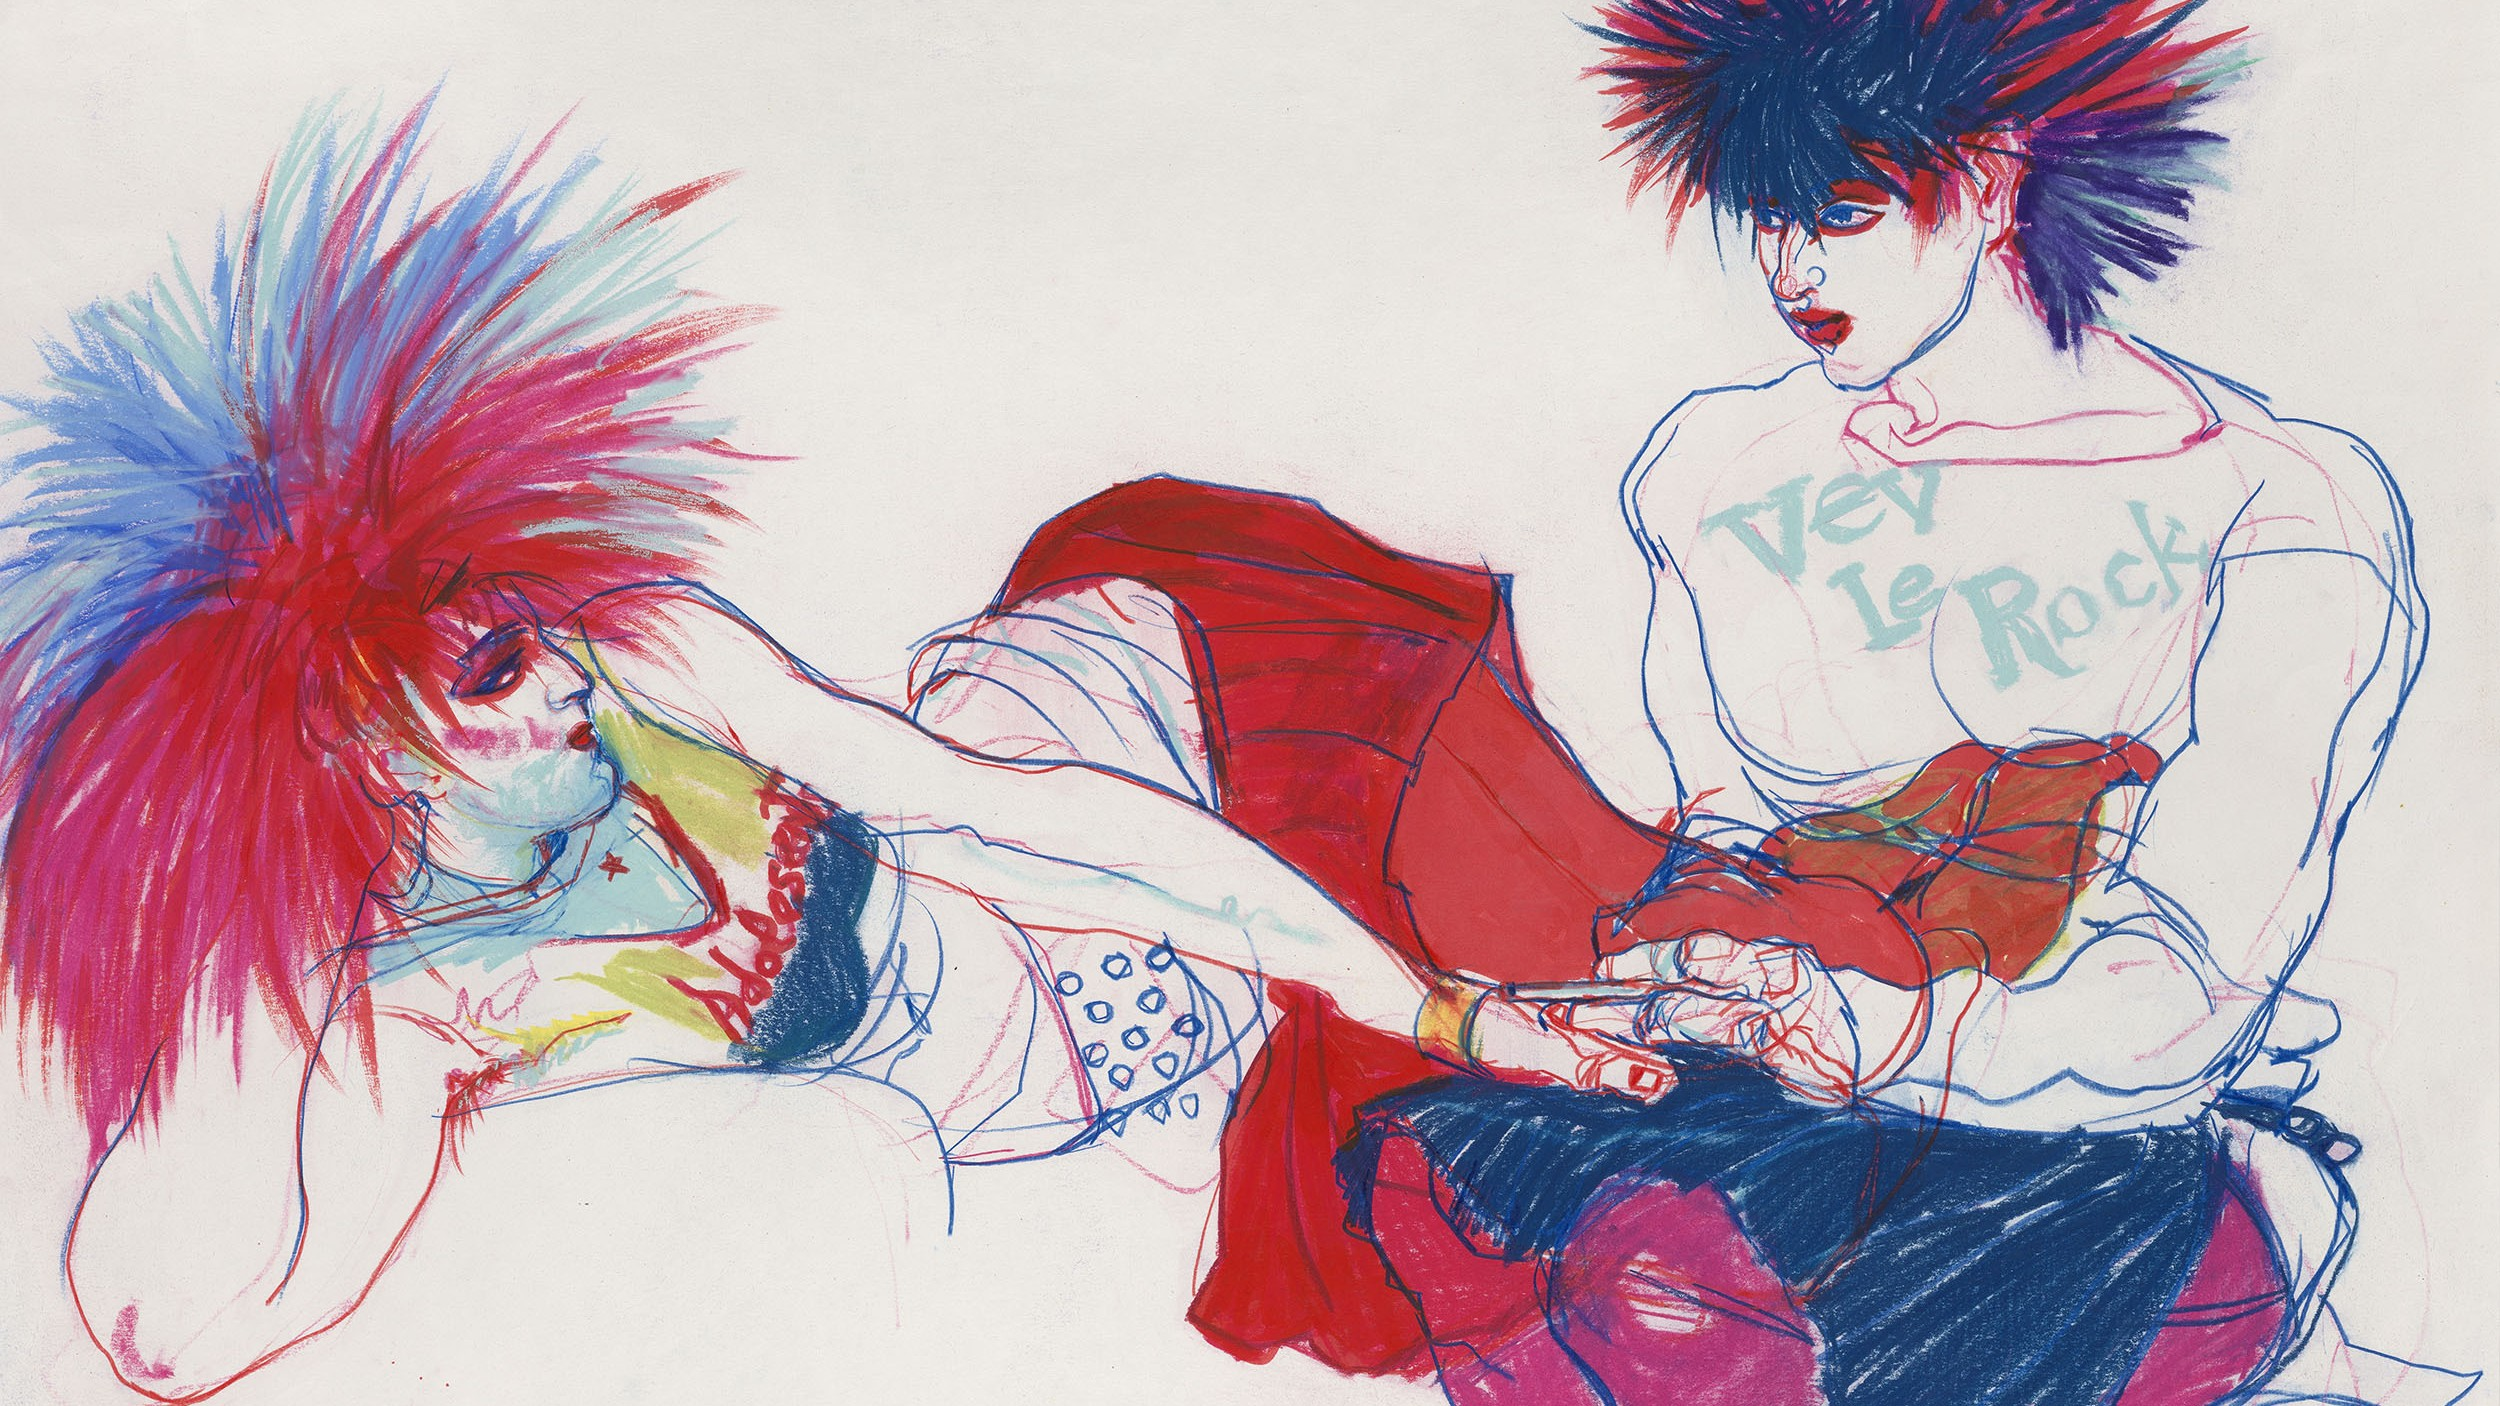 jo brocklehurst, the mysterious outsider who illustrated punk